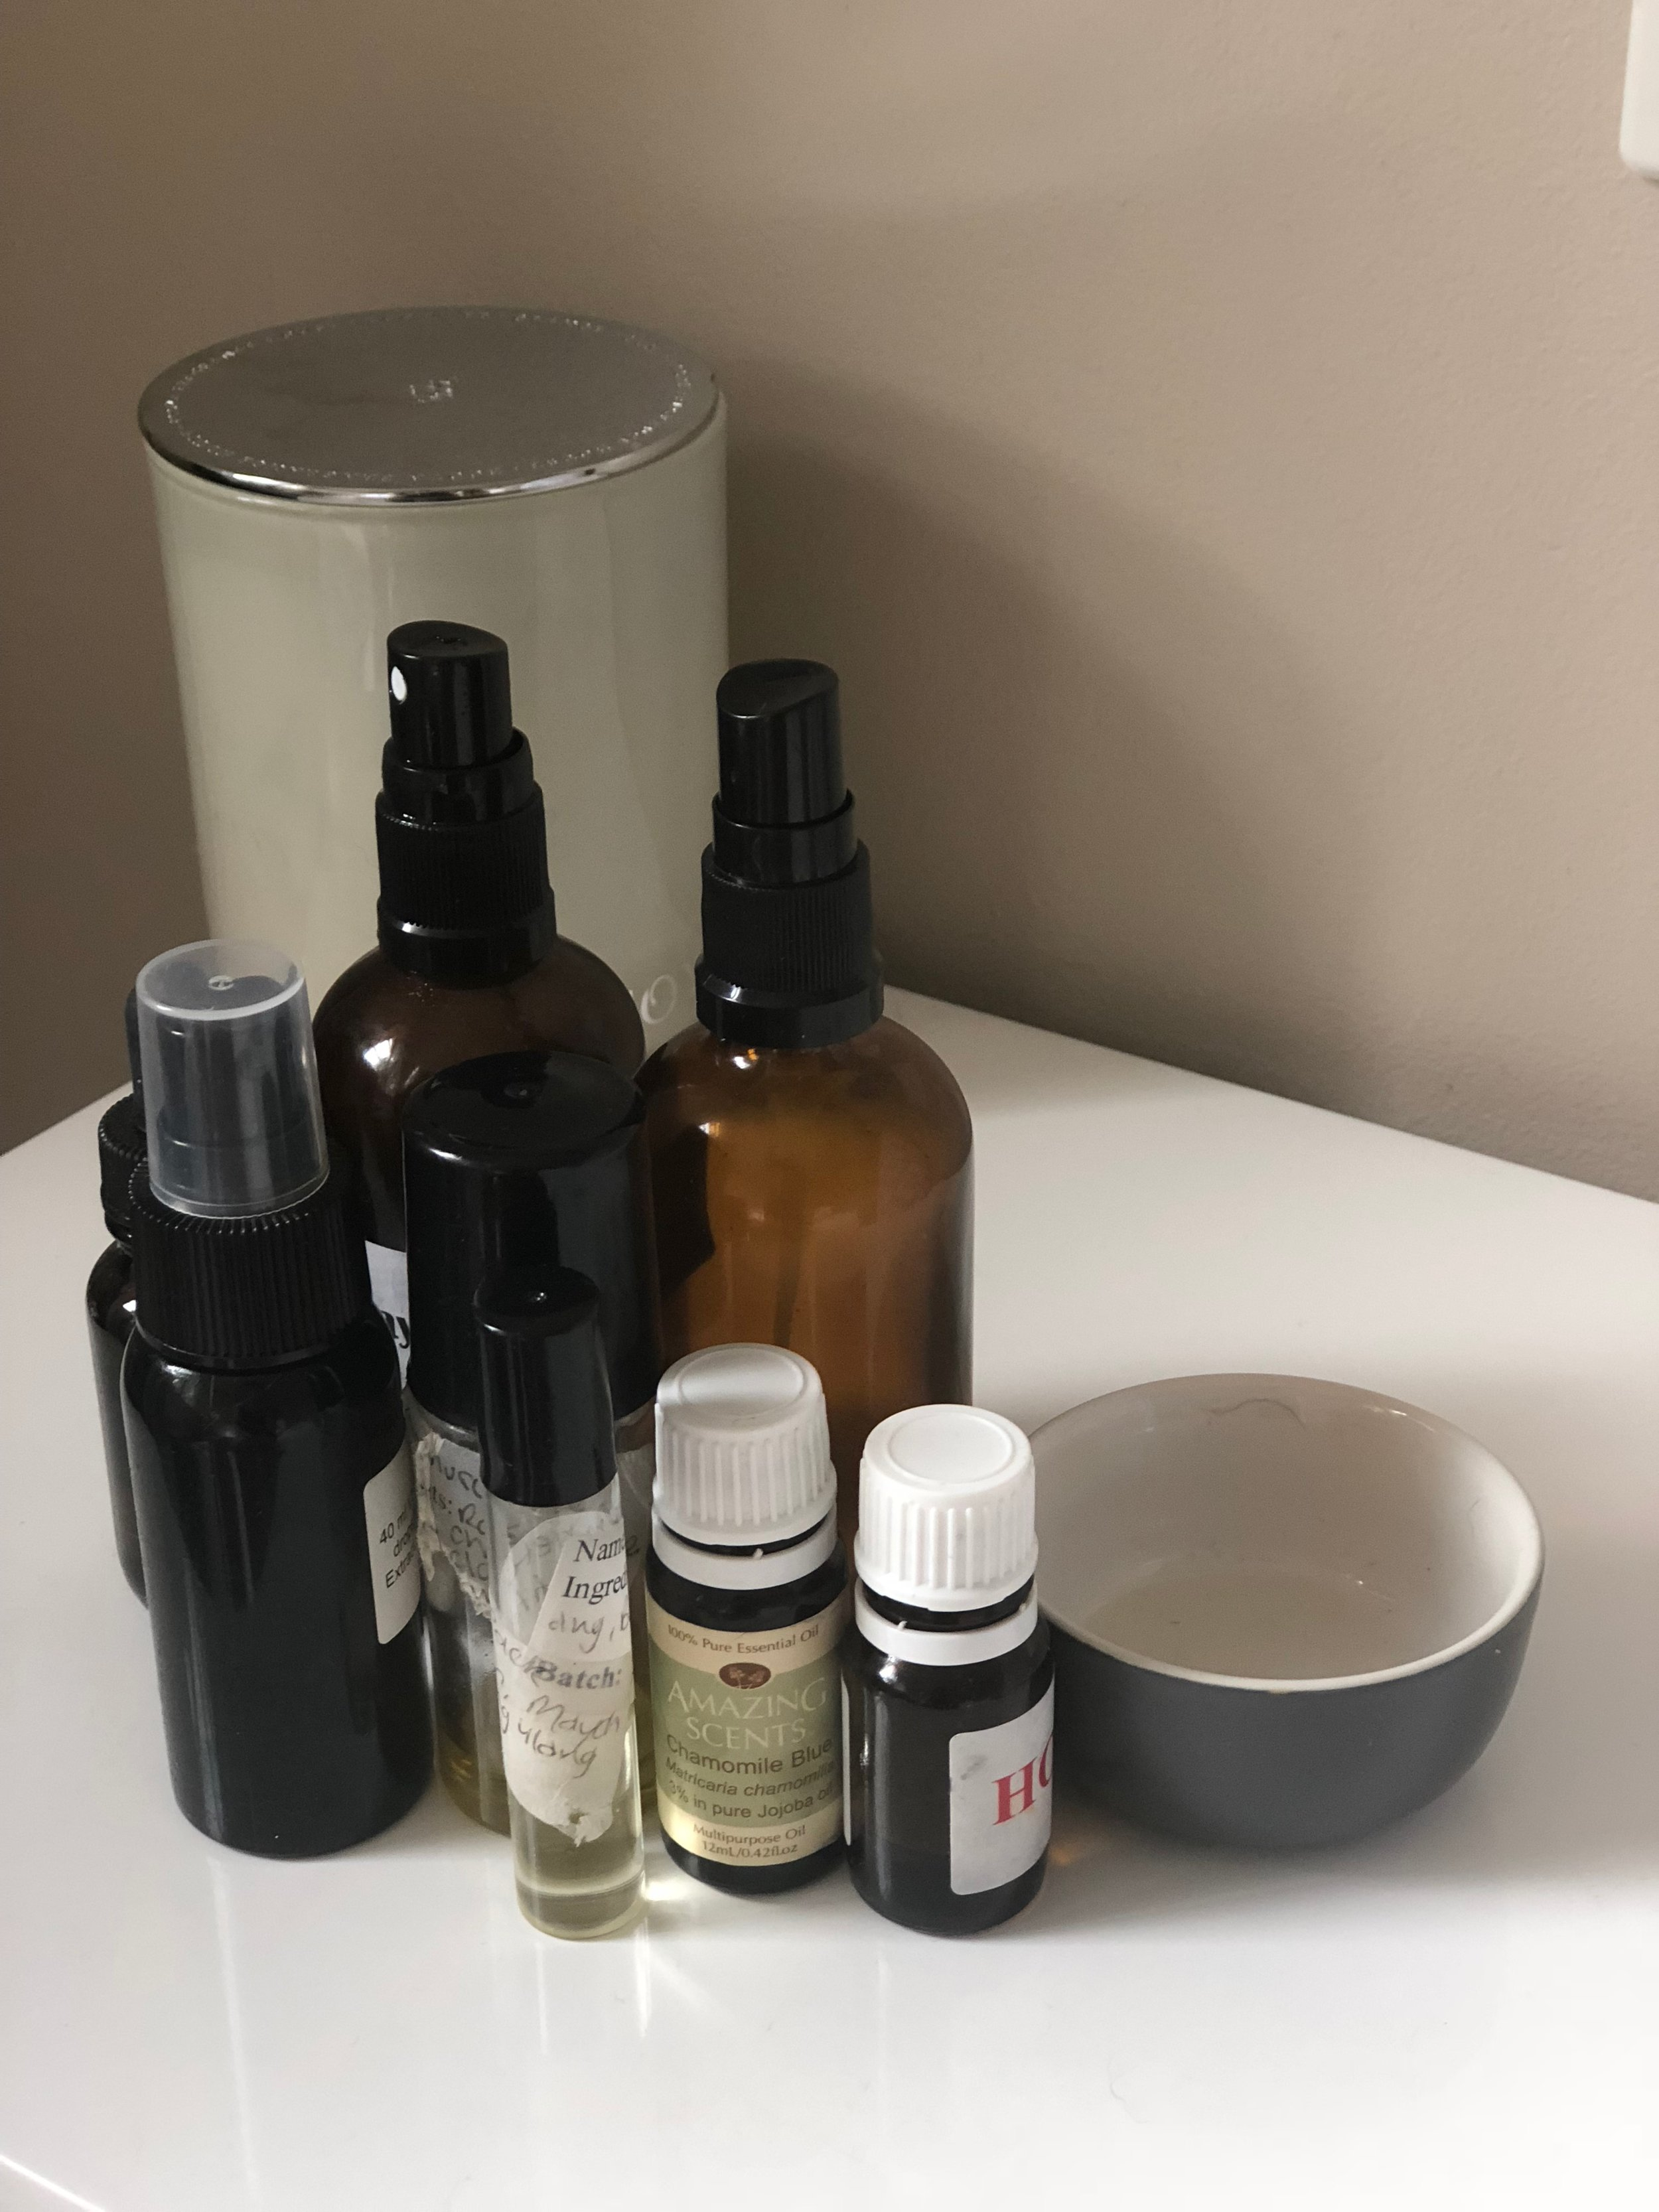 At any given moment you will find sprays, roll ons, droppers and rubs on my bedside table. You never what you'll need at 3 in the morning!